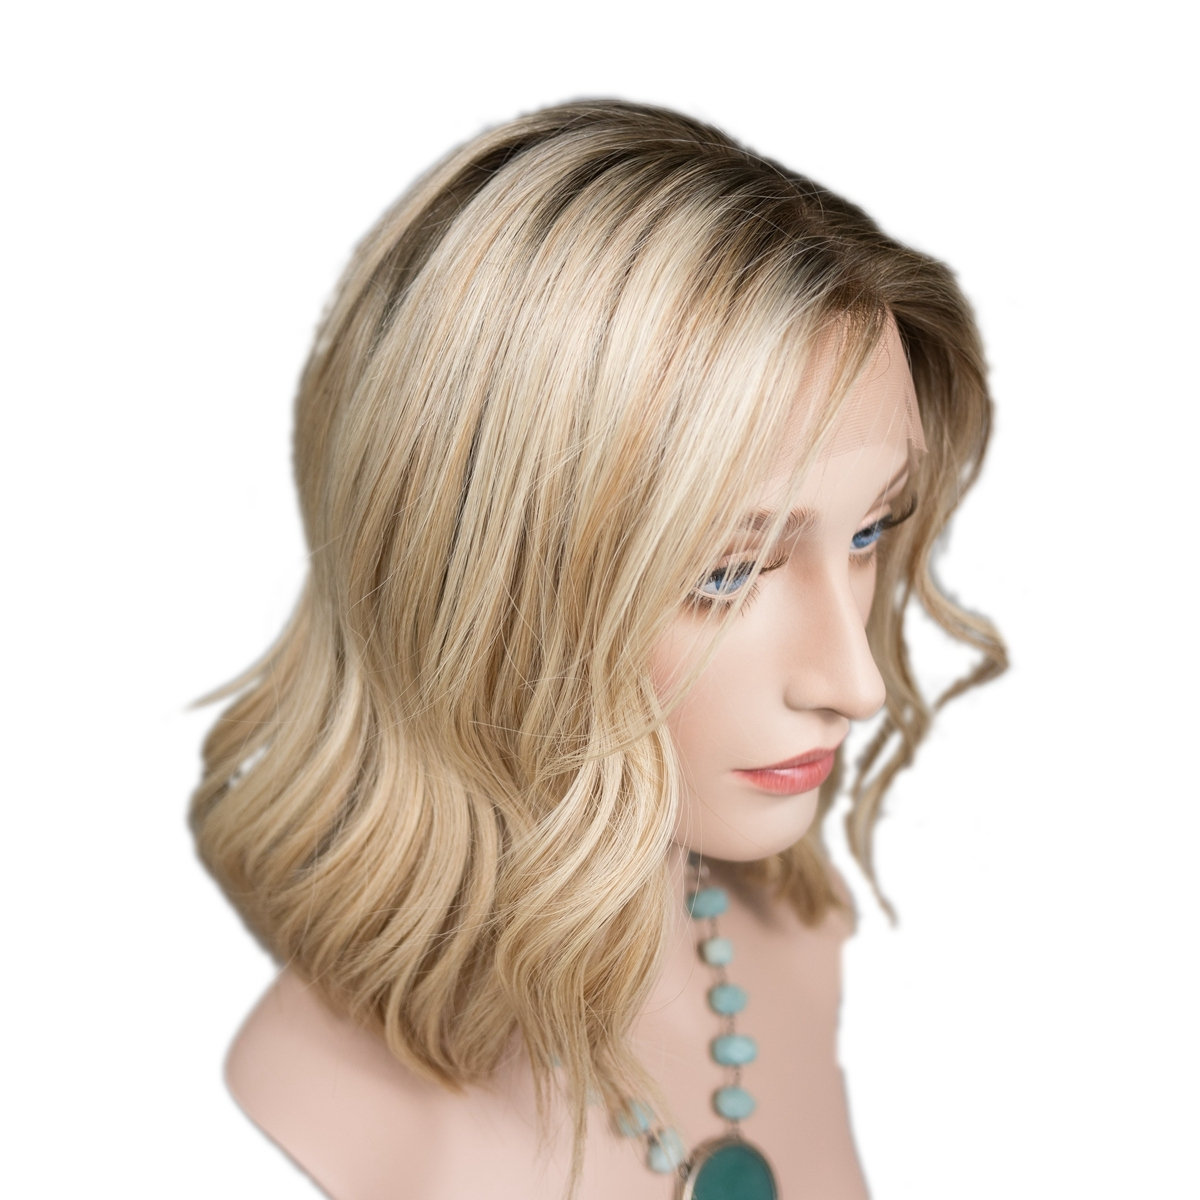 Qingdao Royalstyle Wigs Co.,Ltd Supplies A Wide Range of Quality And Affordable Hair Wigs Rivaling Natural Hair